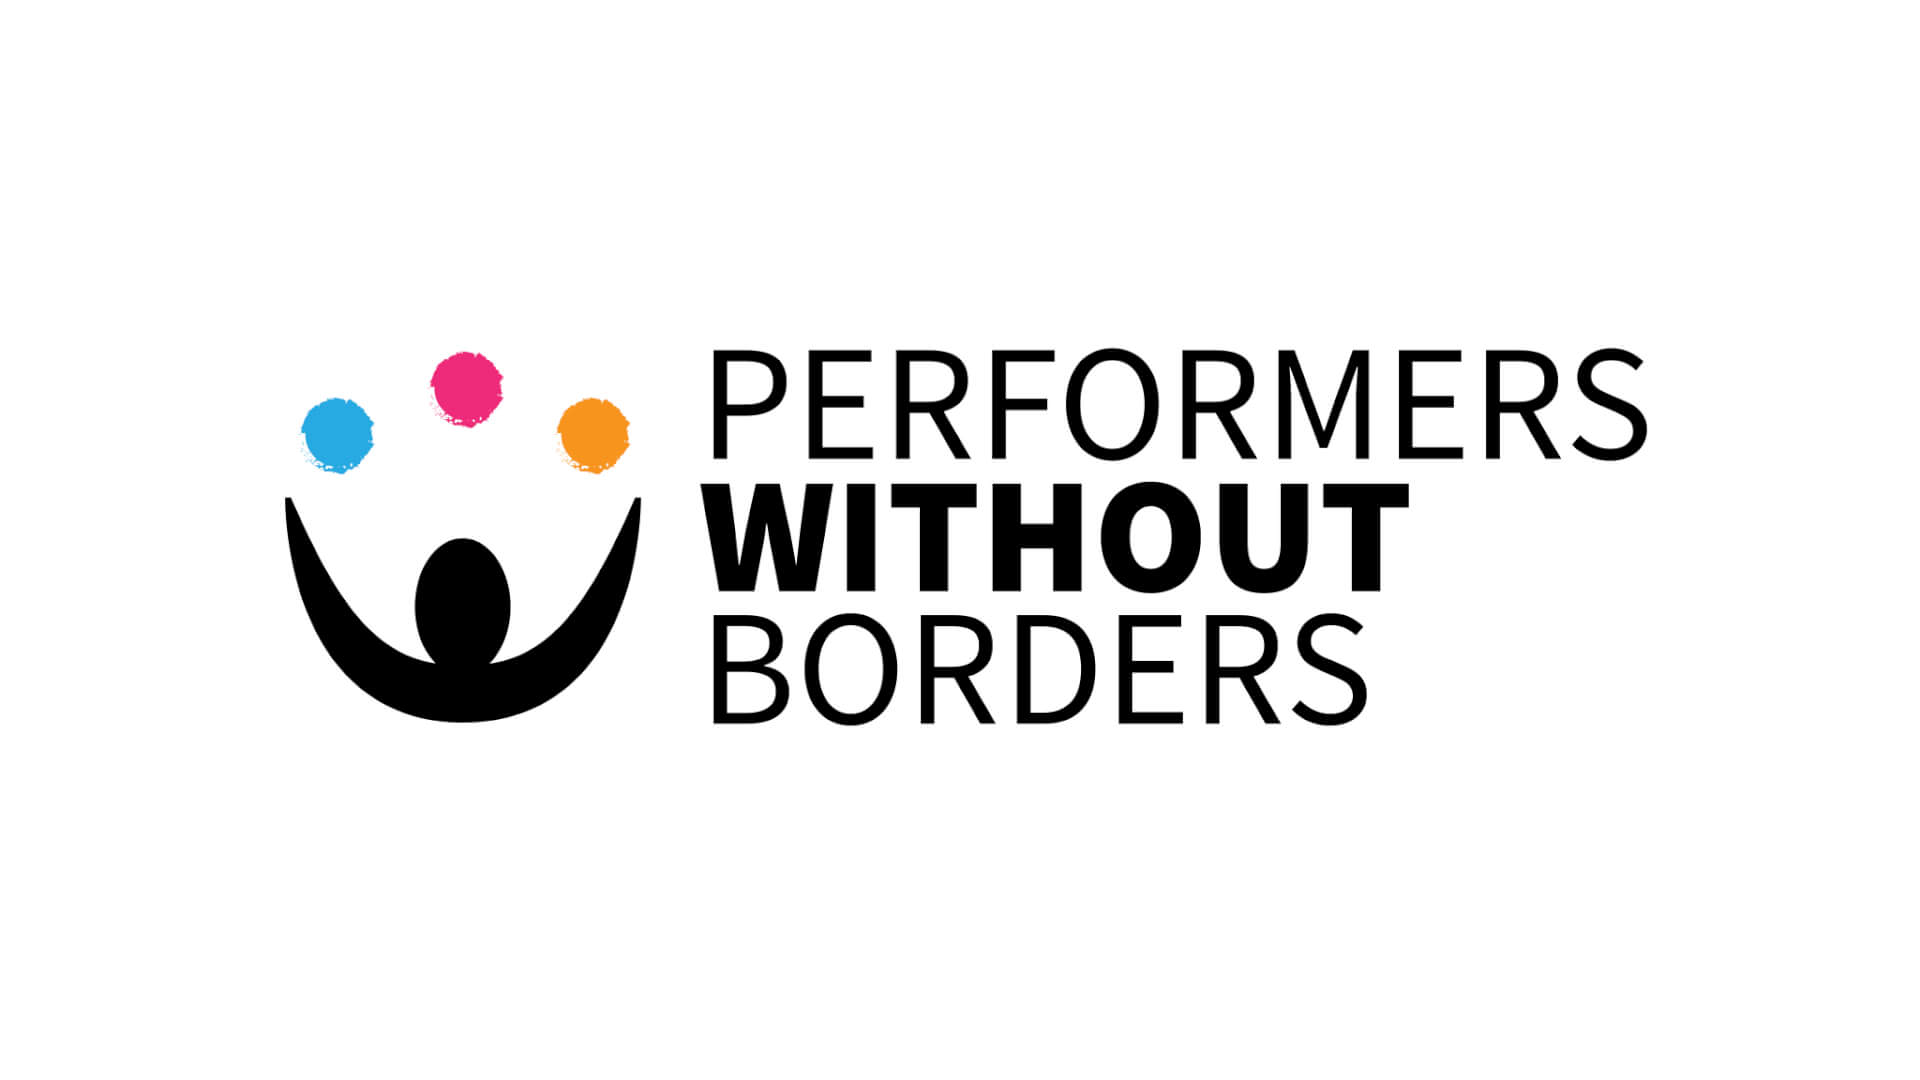 An image showing the new Performers Without Borders logo, which features an icon representing a person juggling three different coloured balls.